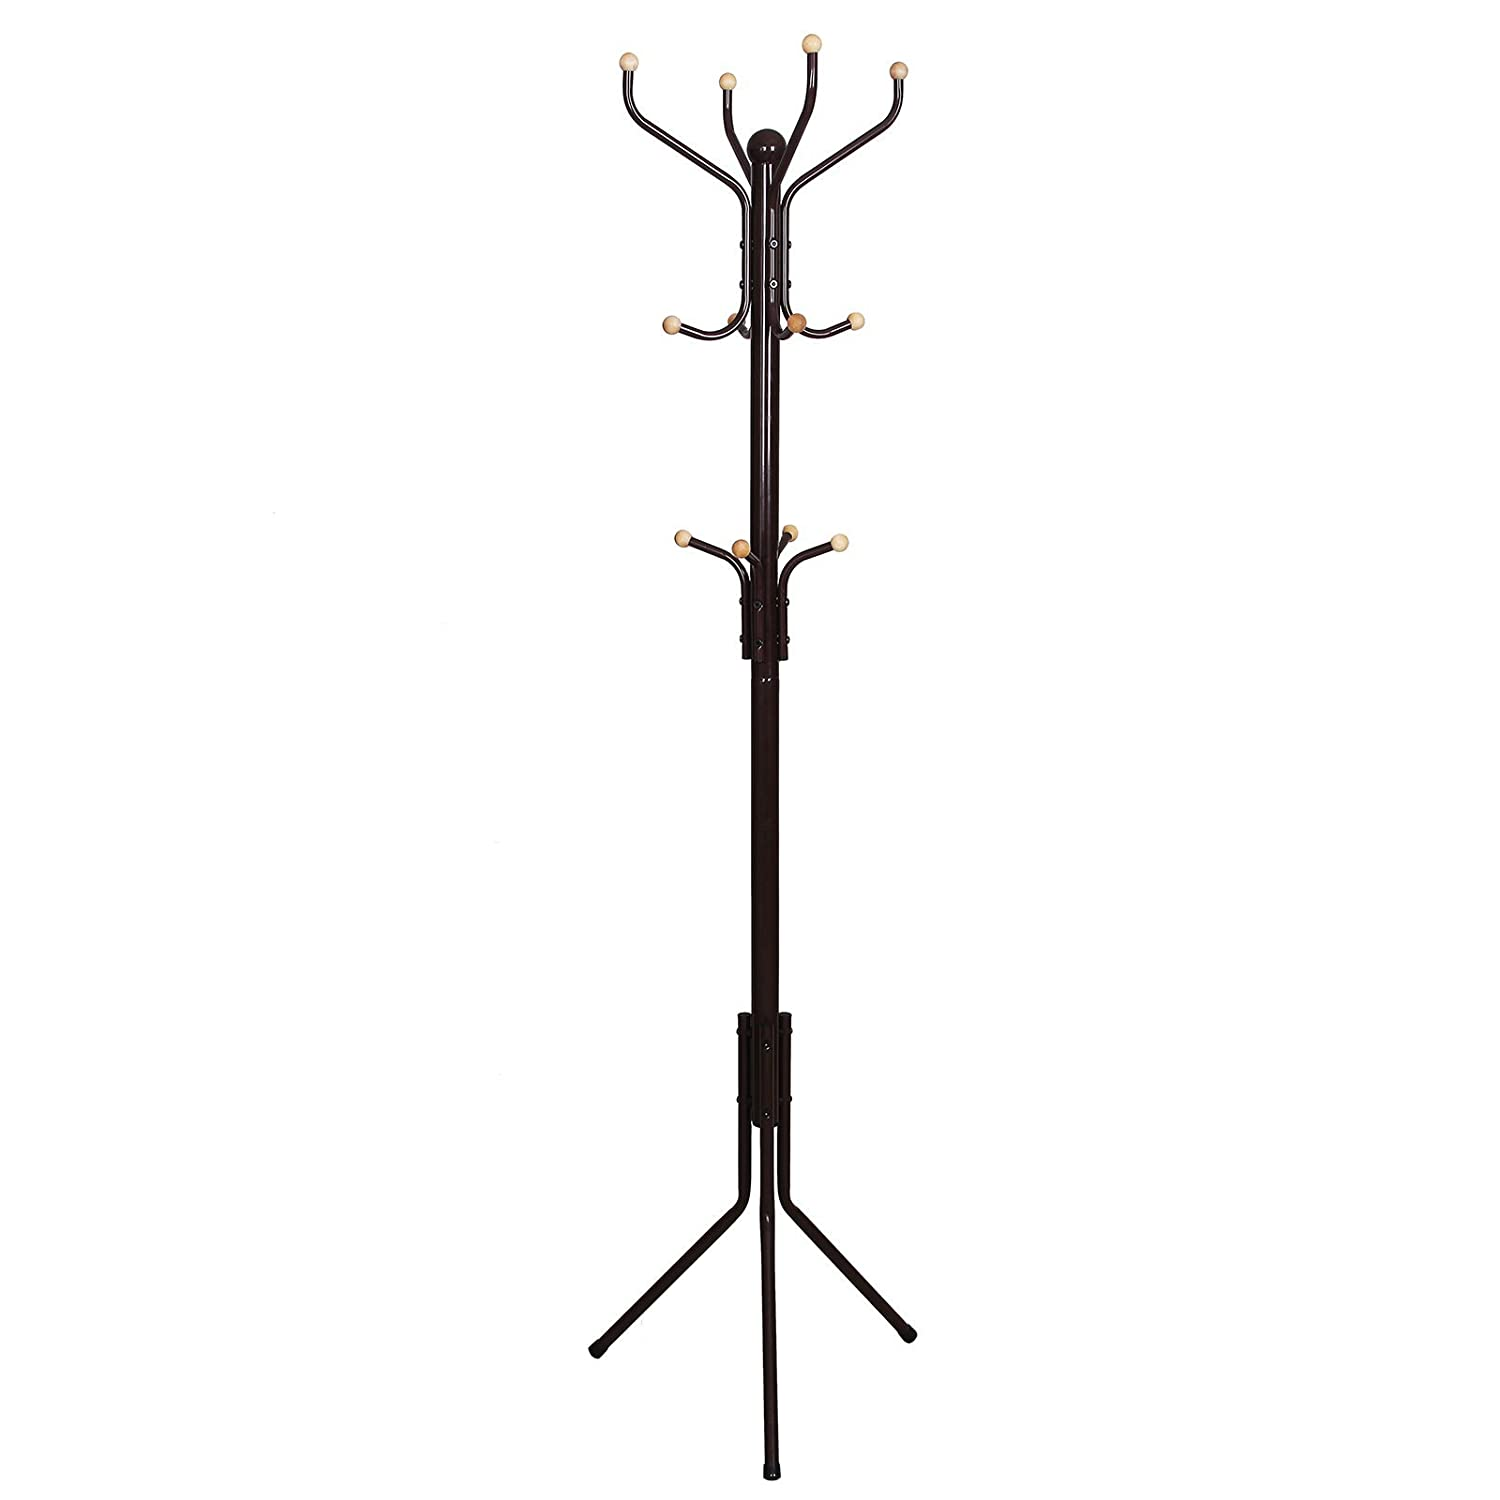 Amazon.com: SONGMICS Metal Coat Rack 12 Hooks Display Hall Tree for Clothes  Hats and Bags Espresso URCR18Z: Kitchen & Dining